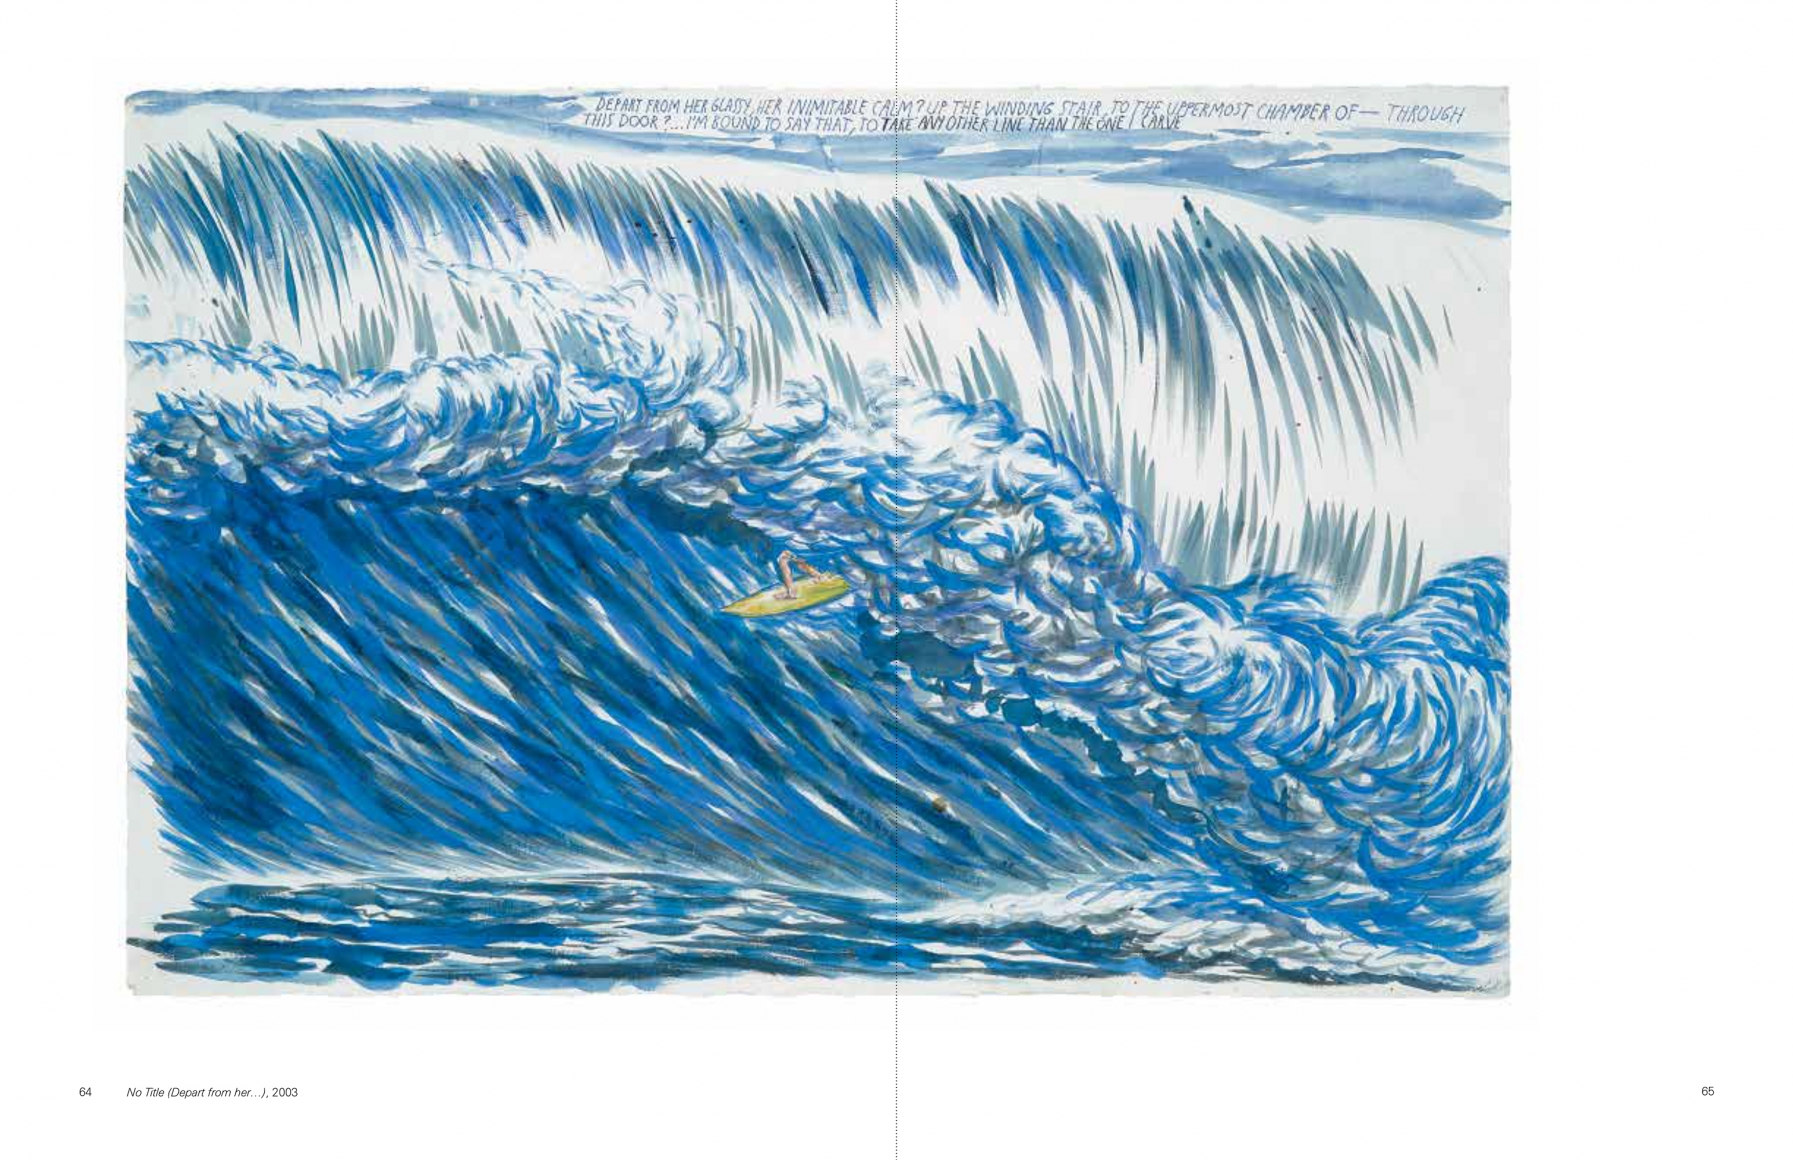 Interior view of Raymond Pettibon: Surfers 1985-2015, published by Venus Over Manhattan and David Zwirner, New York, 2015